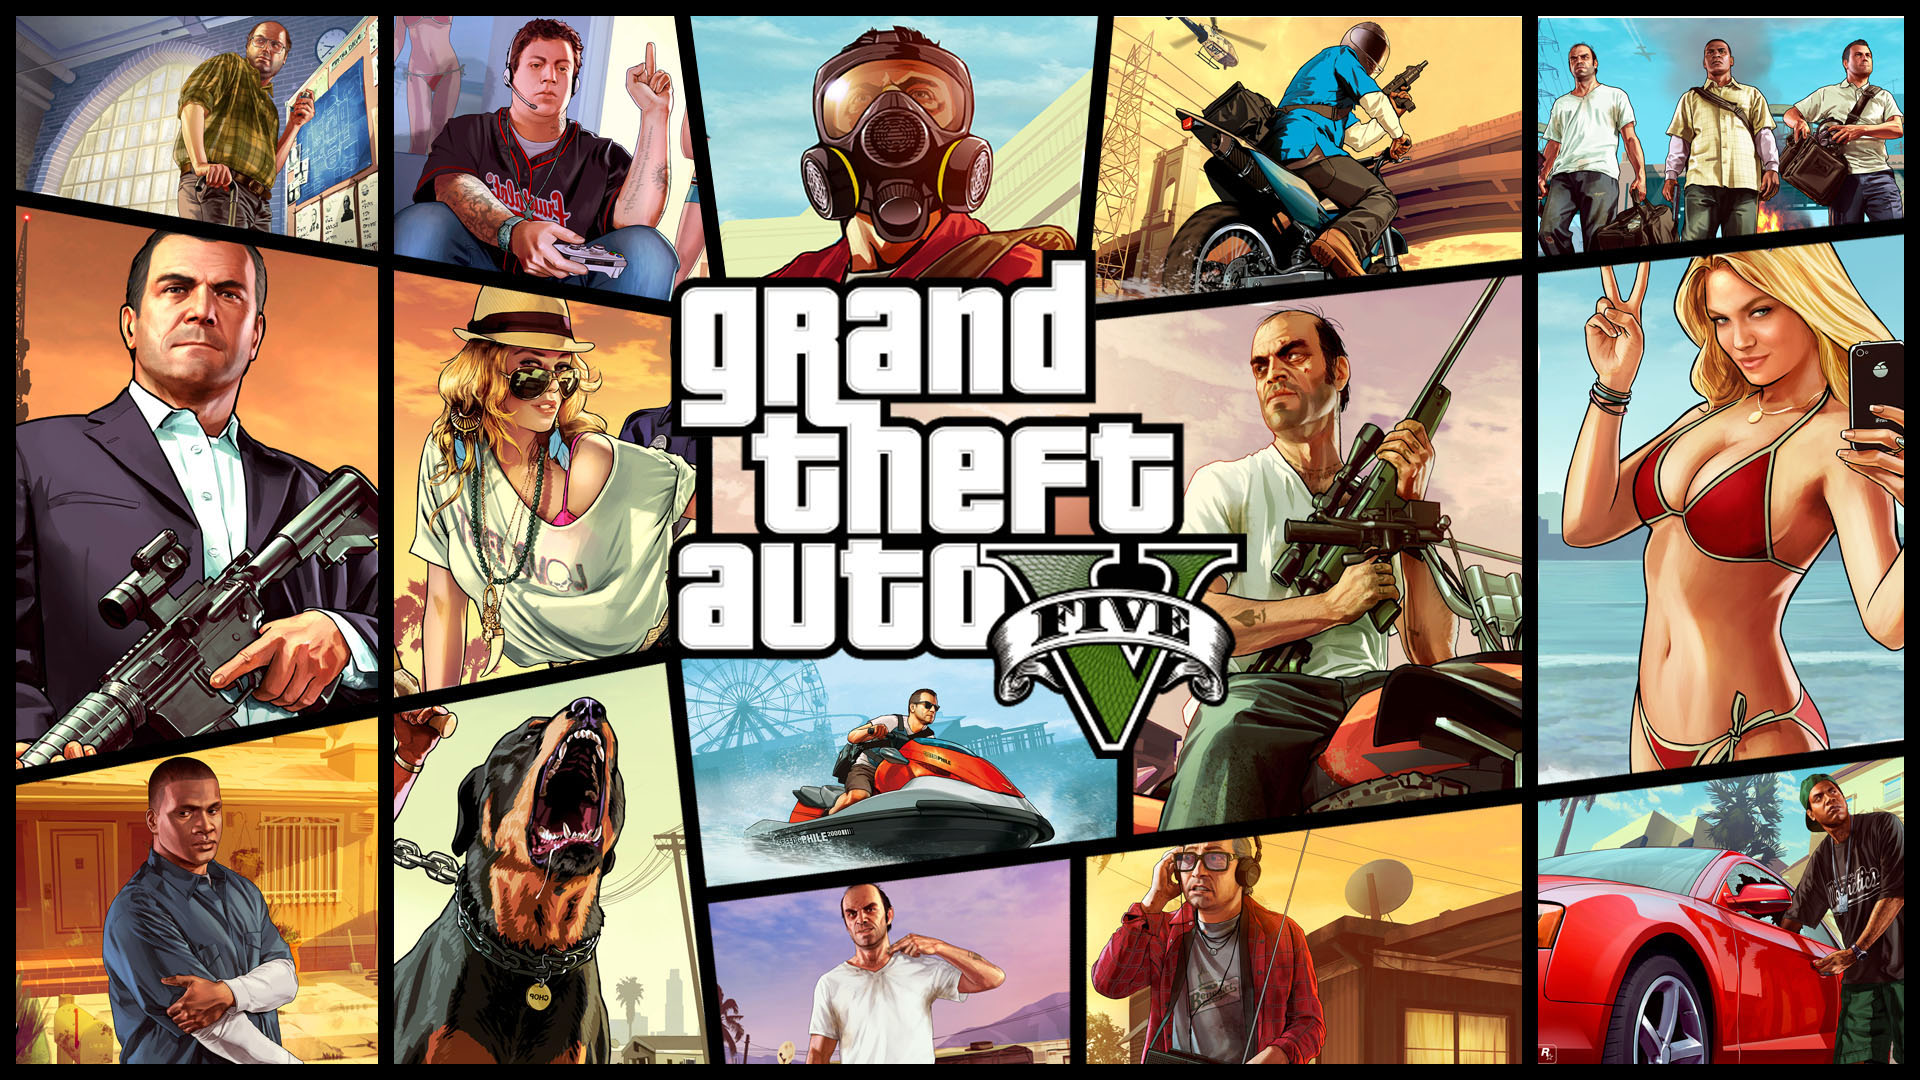 Grand-Theft-Auto-V-GTA-5-games-Wallpapers